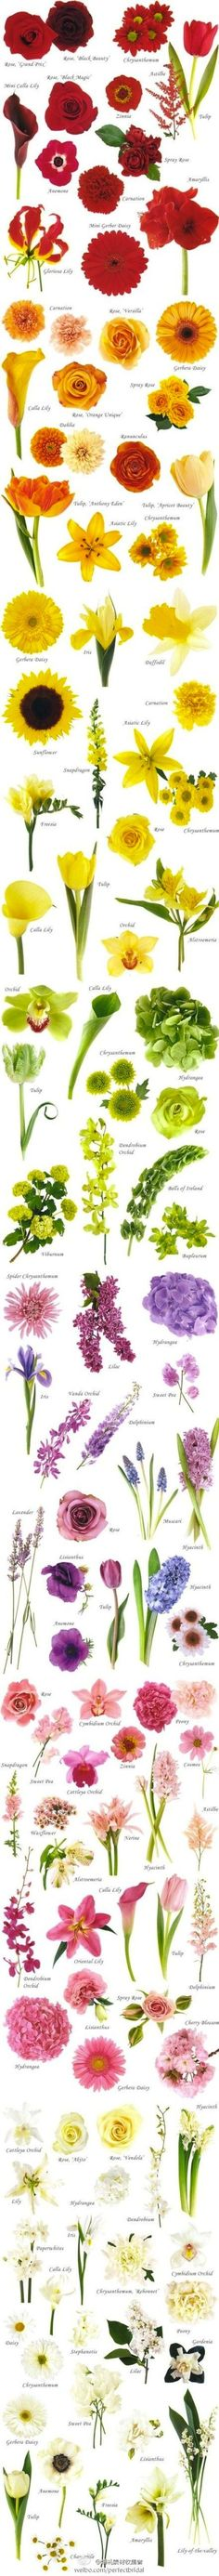 A Very Handy Flower Chart Organised by Colour - The Wedding Scoop: Directory, Reviews and Blog for Singapore Weddings